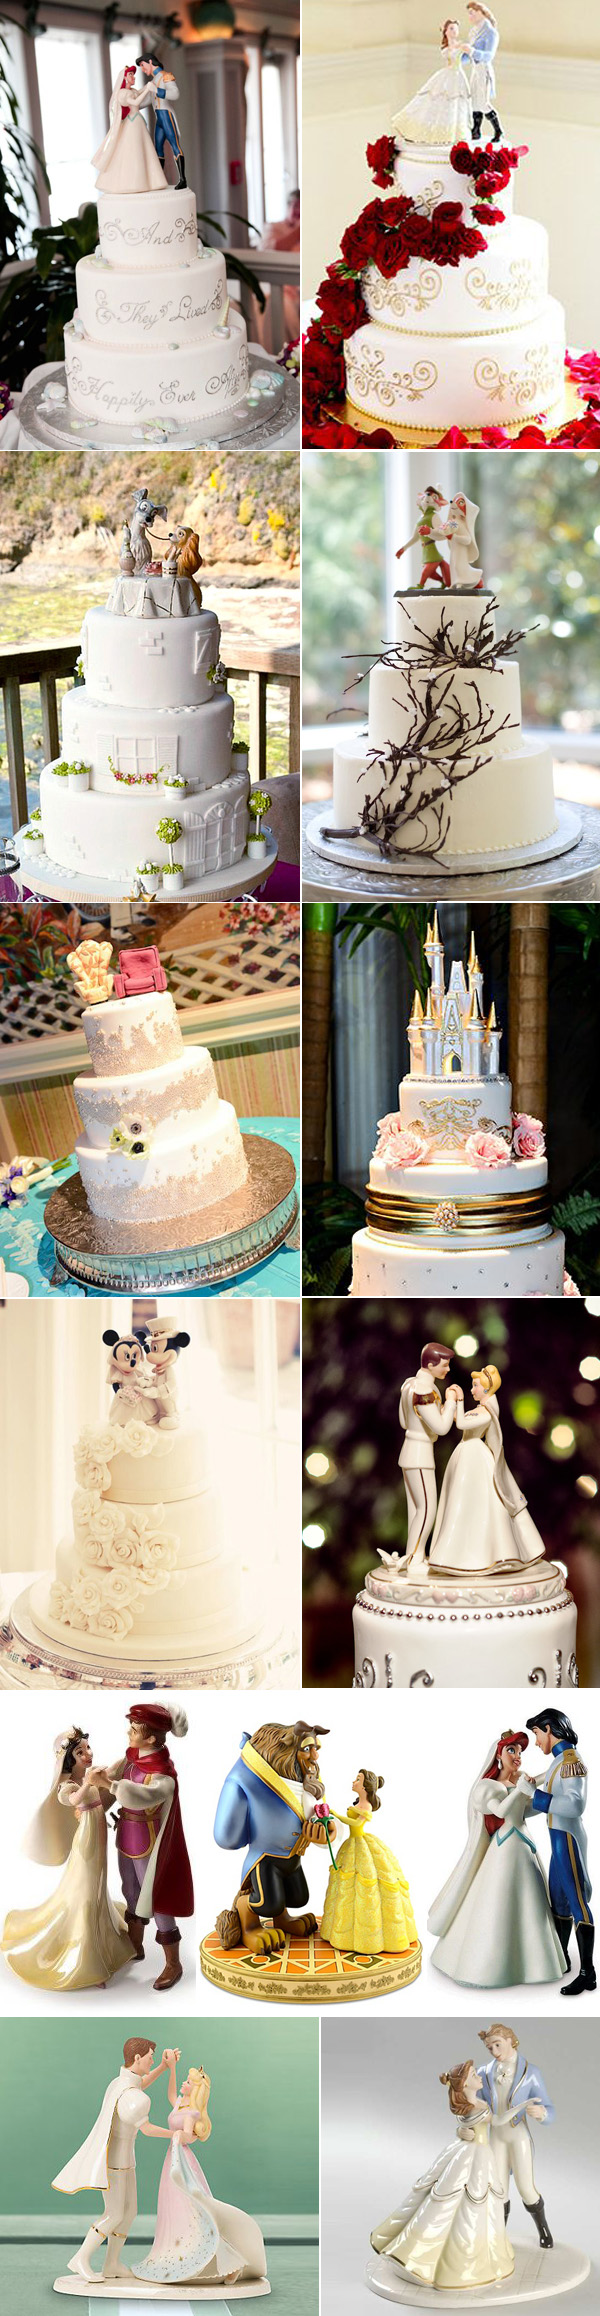 39 Unique   Funny Wedding Cake Toppers   Deer Pearl Flowers Disney Wedding Cake Toppers